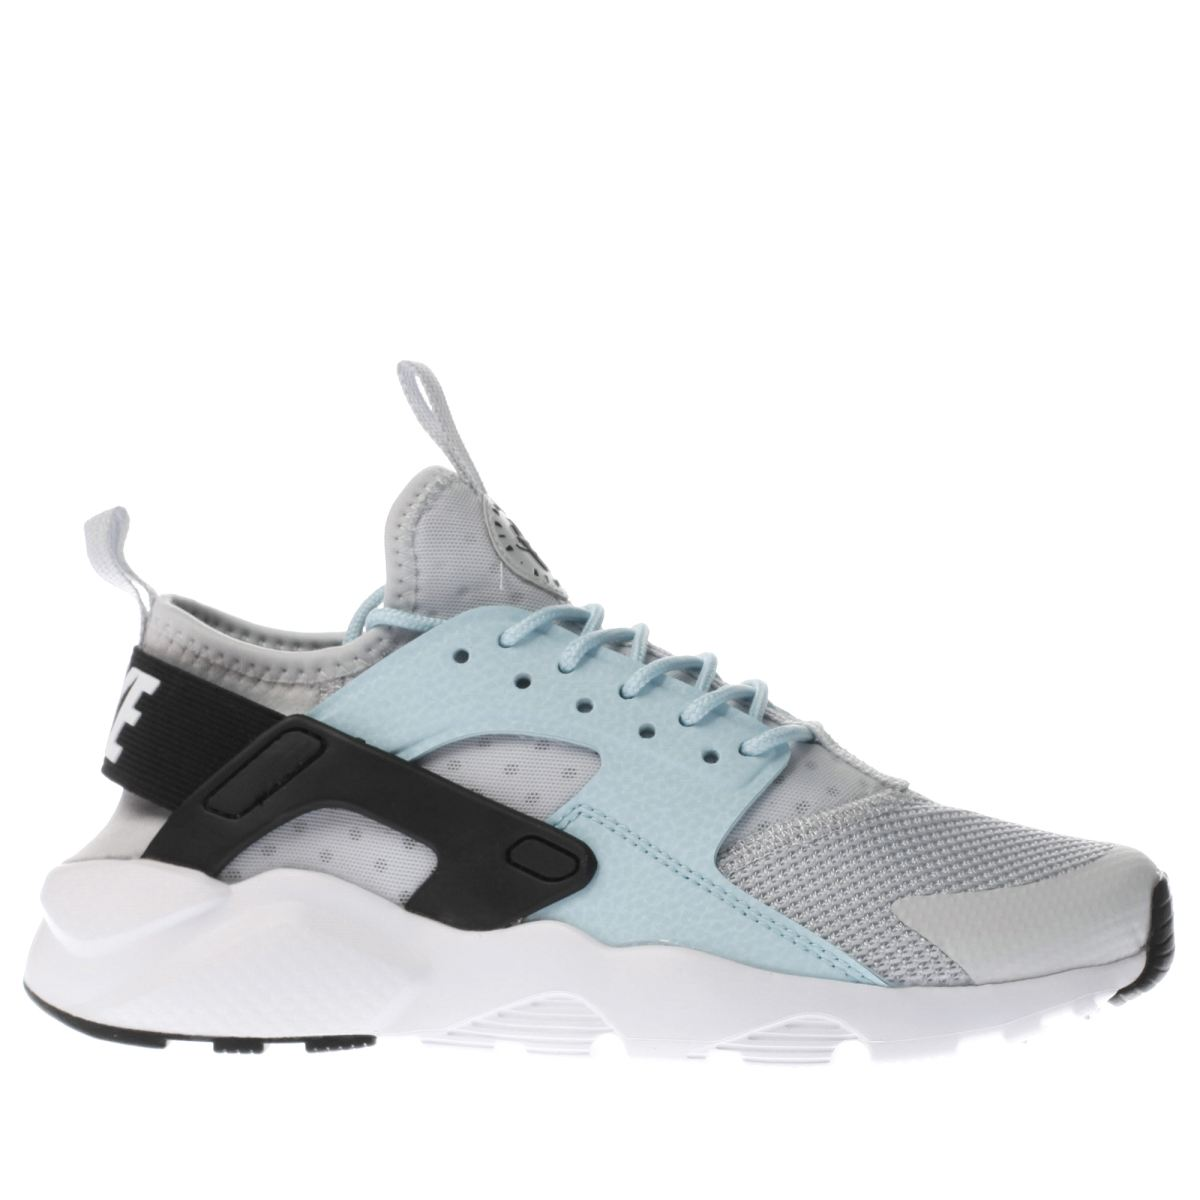 nike light grey huarache run ultra Girls Youth Trainers